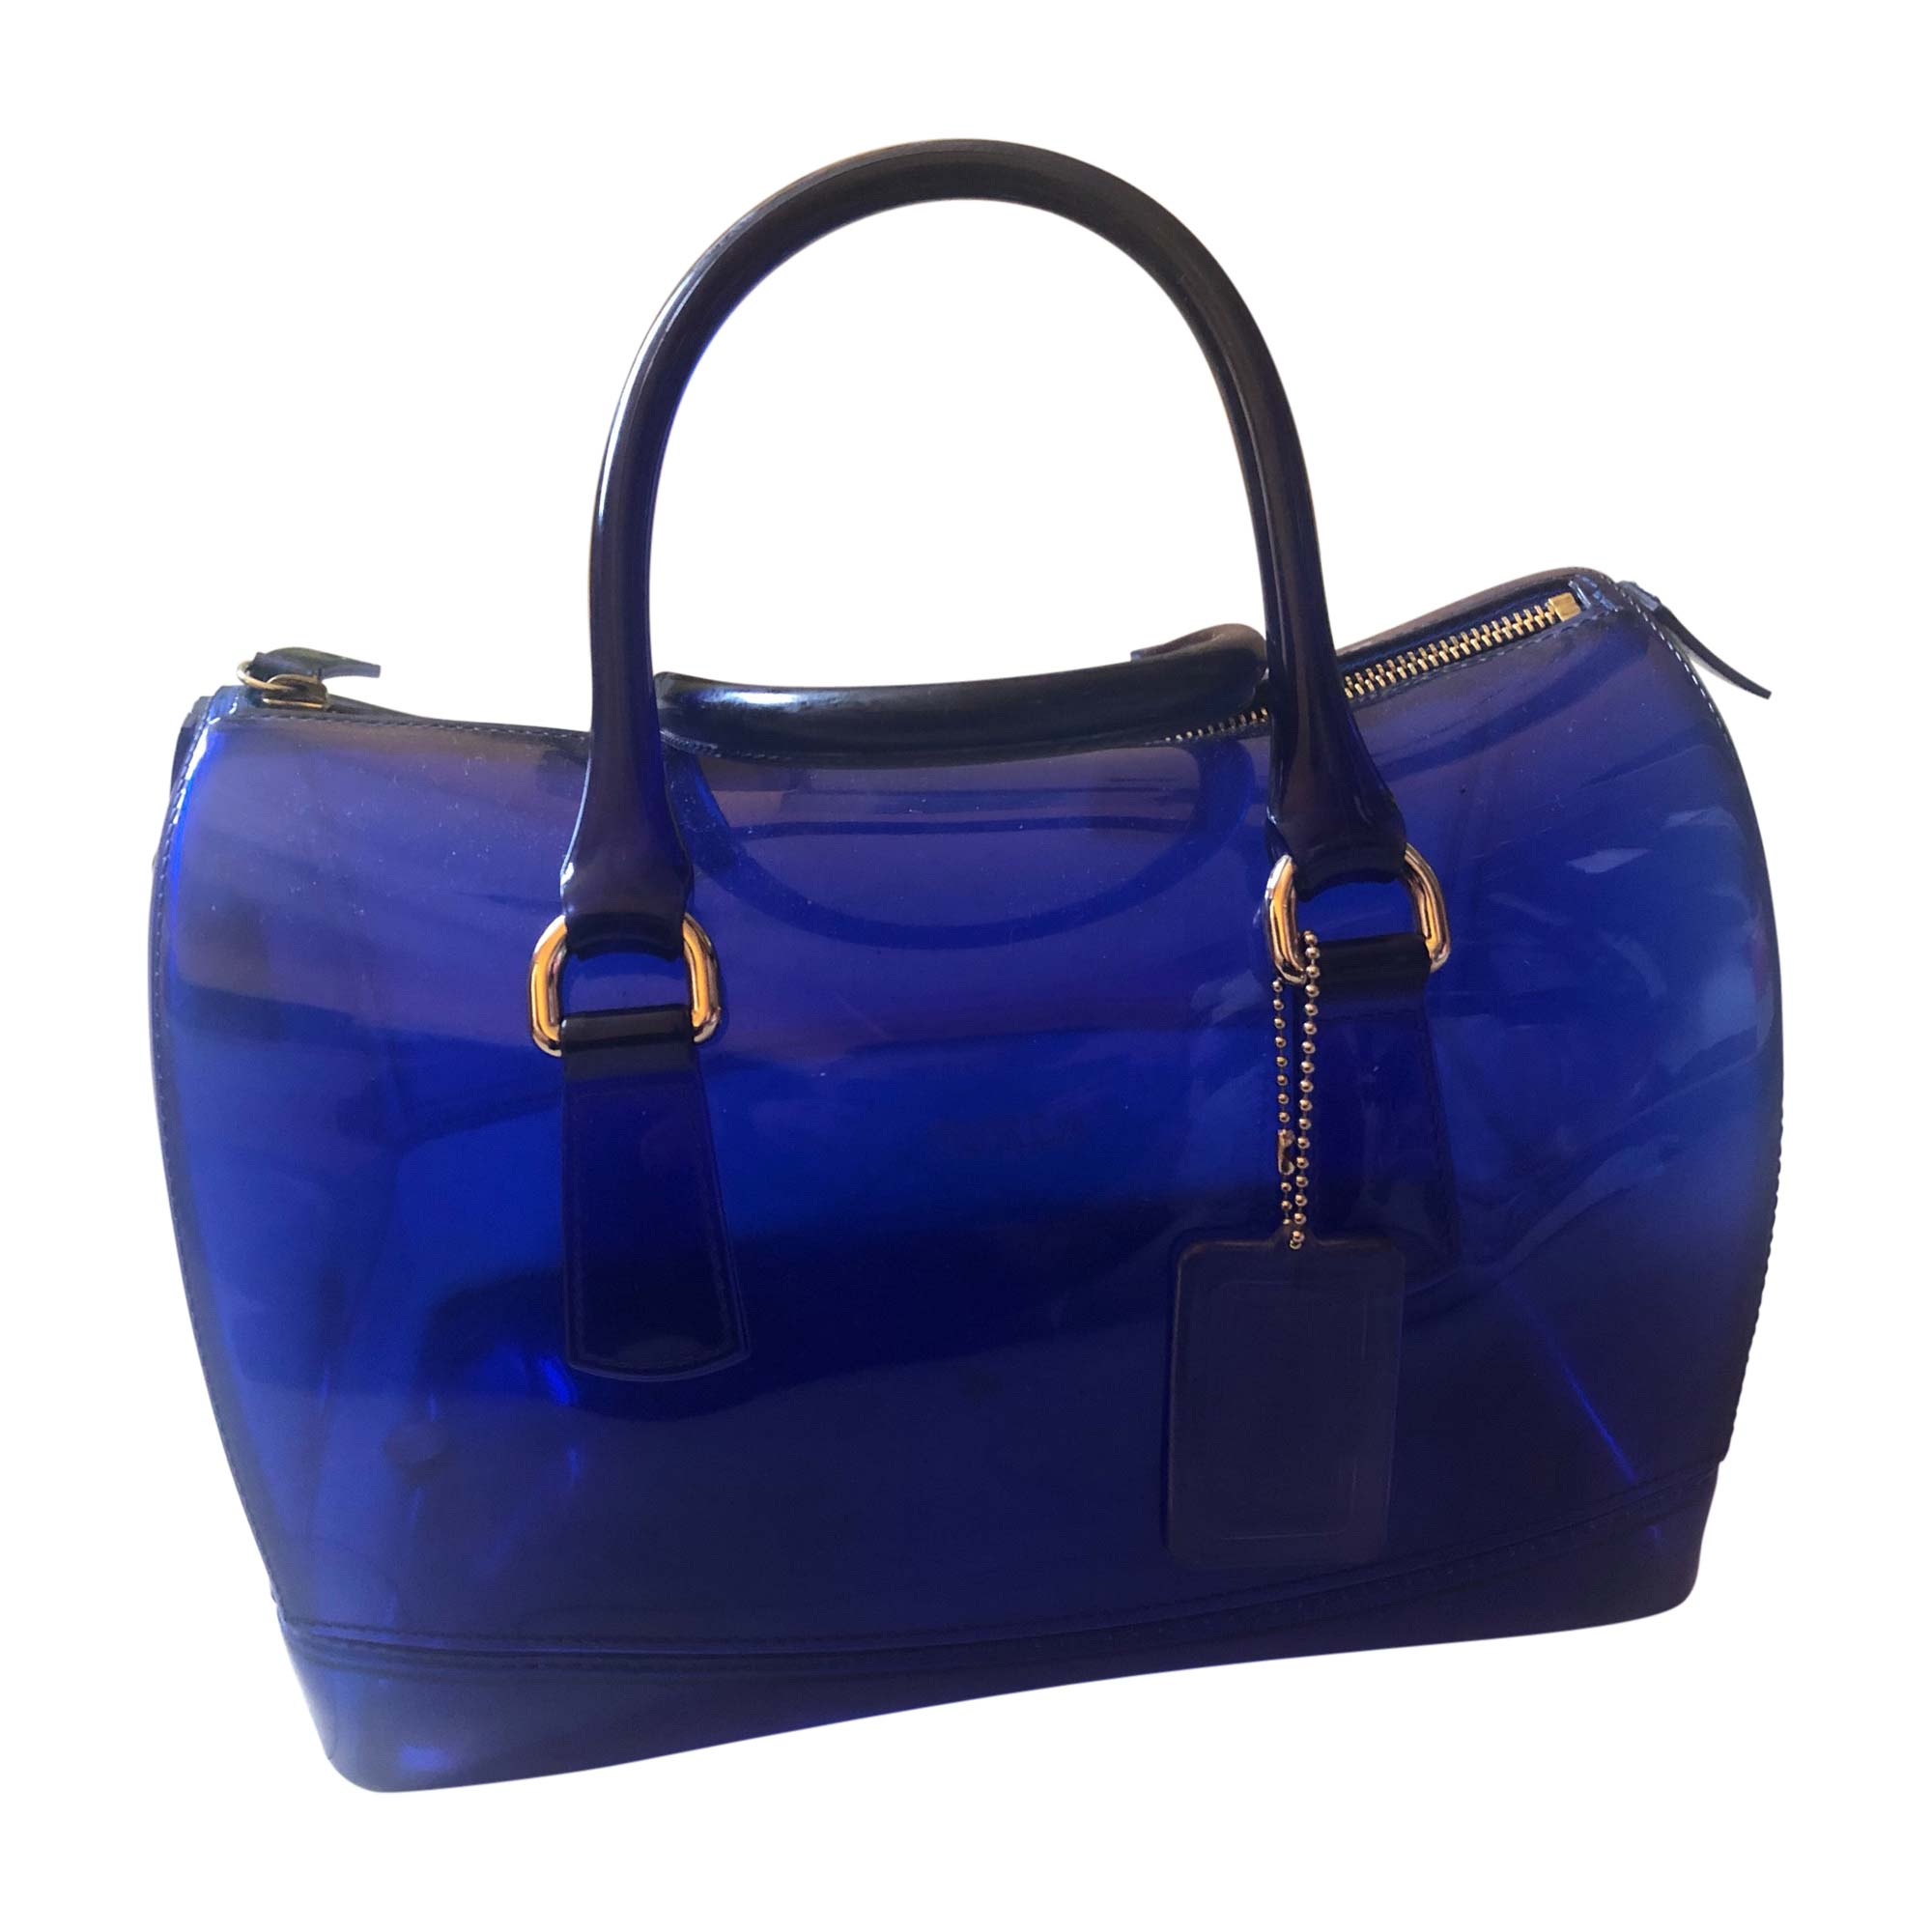 Leather Handbag FURLA Blue, navy, turquoise